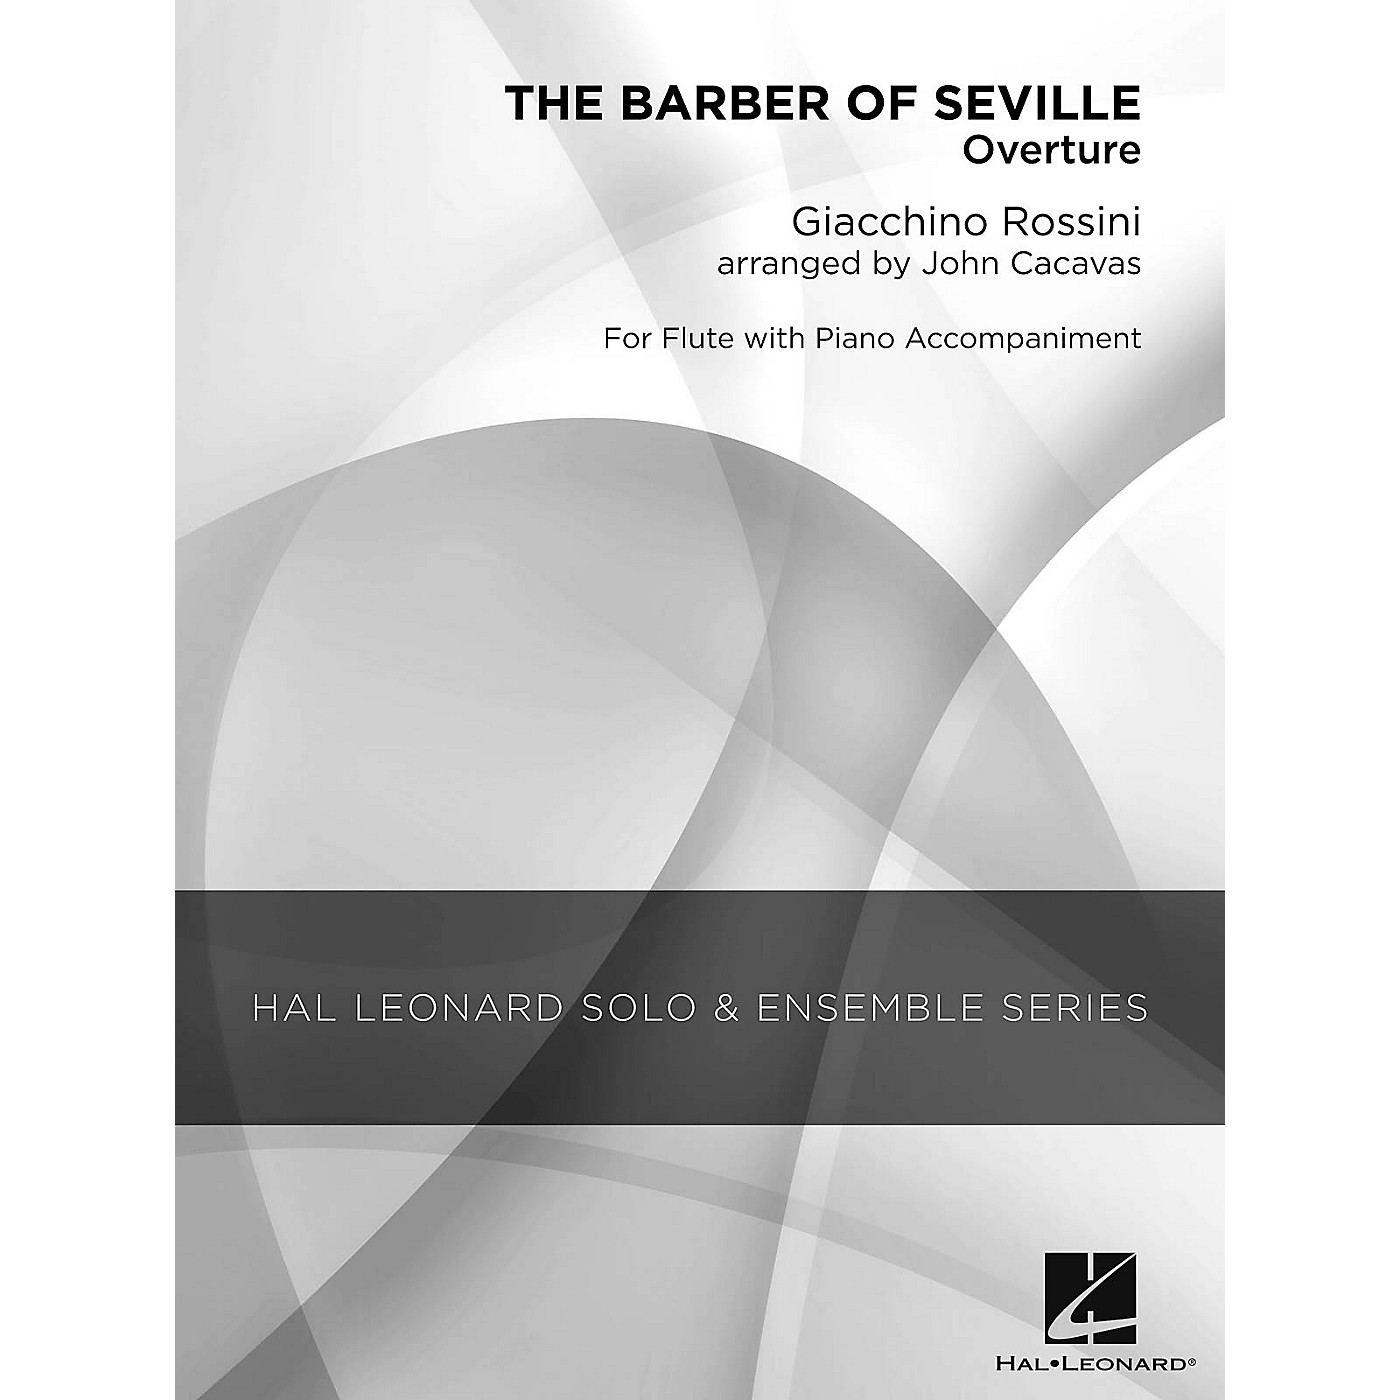 Hal Leonard Overture to The Barber of Seville (Grade 3 Flute Solo) Concert Band Level 3 Arranged by John Cacavas thumbnail